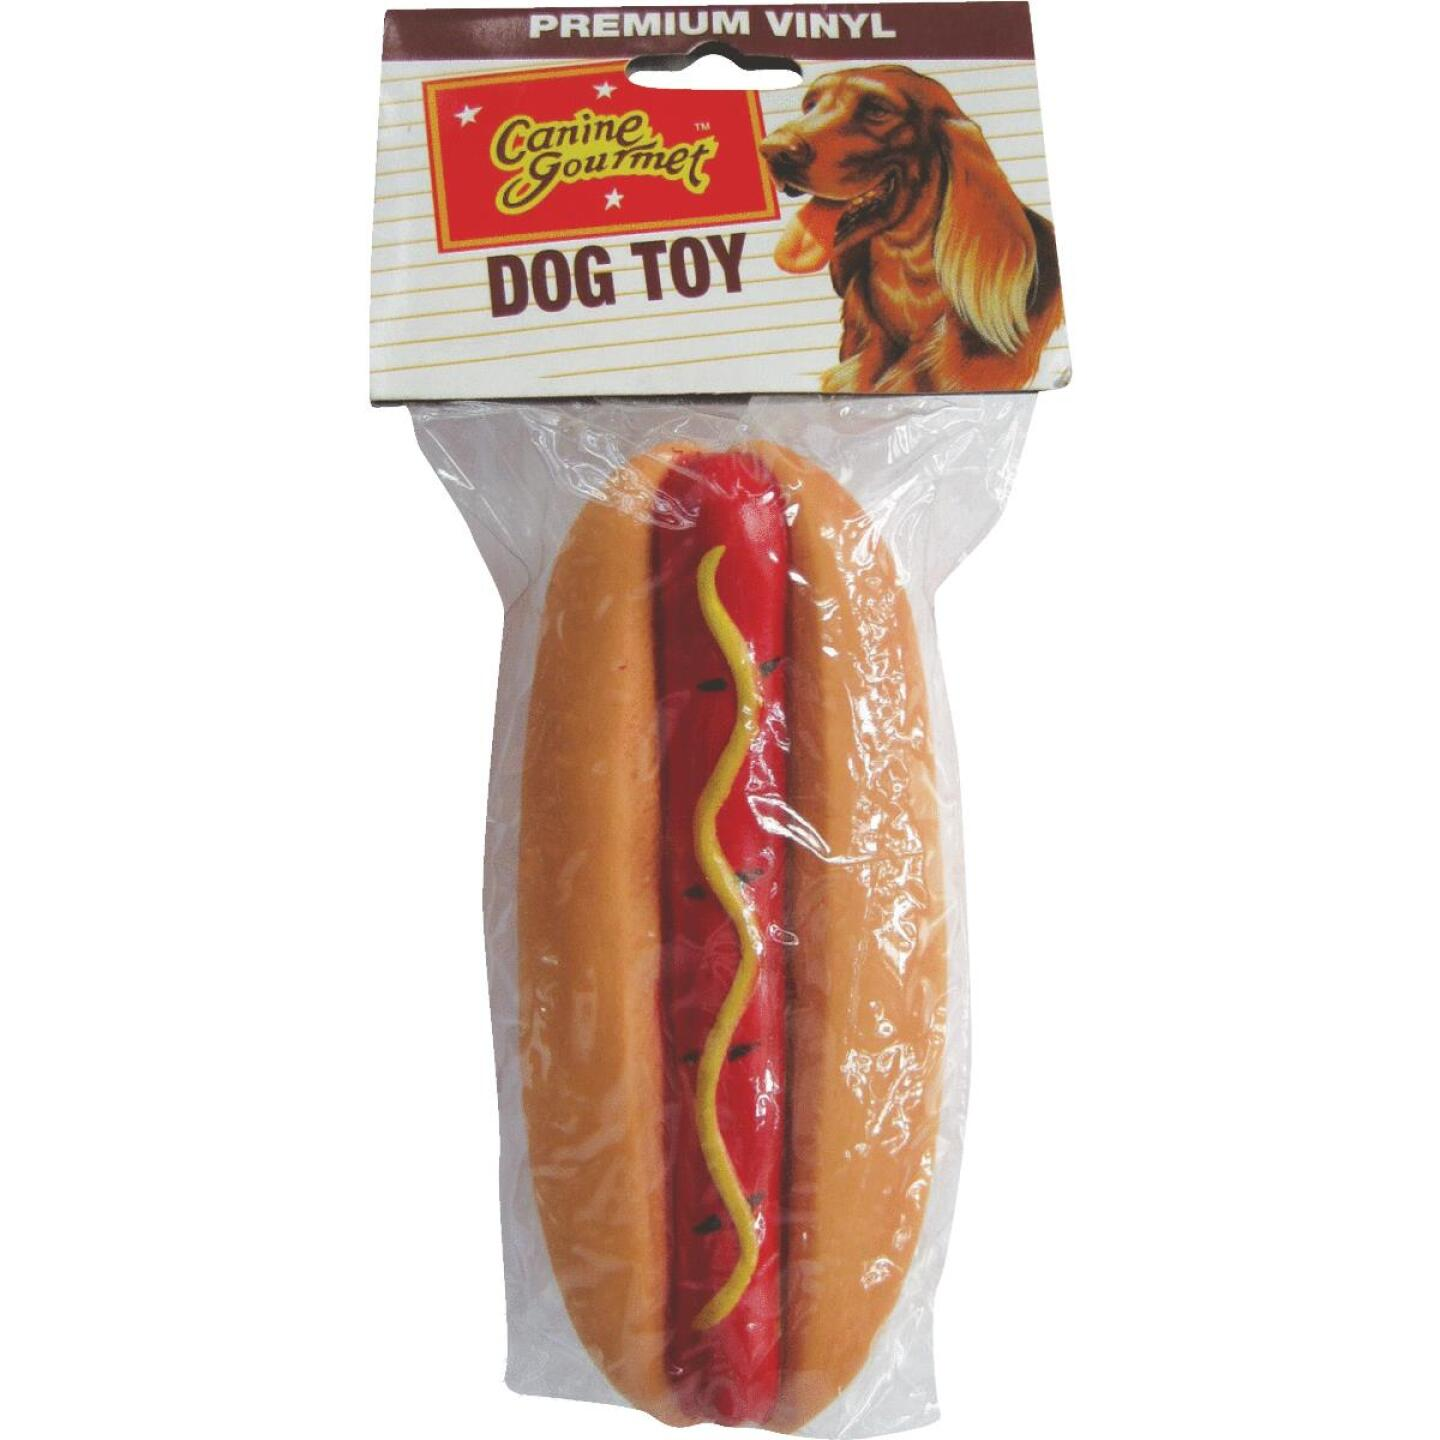 Westminster Pet Ruffin' it 1.66 In. W. x 2.0 In. H. x 5.25 In. L. Squeaky Hot Dog Vinyl Dog Toy Image 2